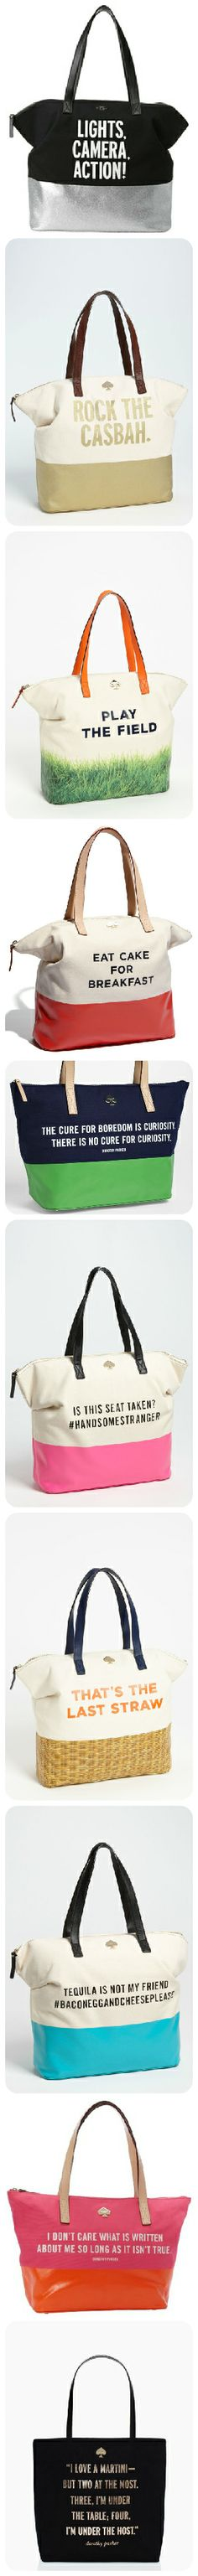 "Kate Spade totes (mostly from the ""Call to Action"" range). My absolute favourite is the ""Eat Cake For Breakfast""."